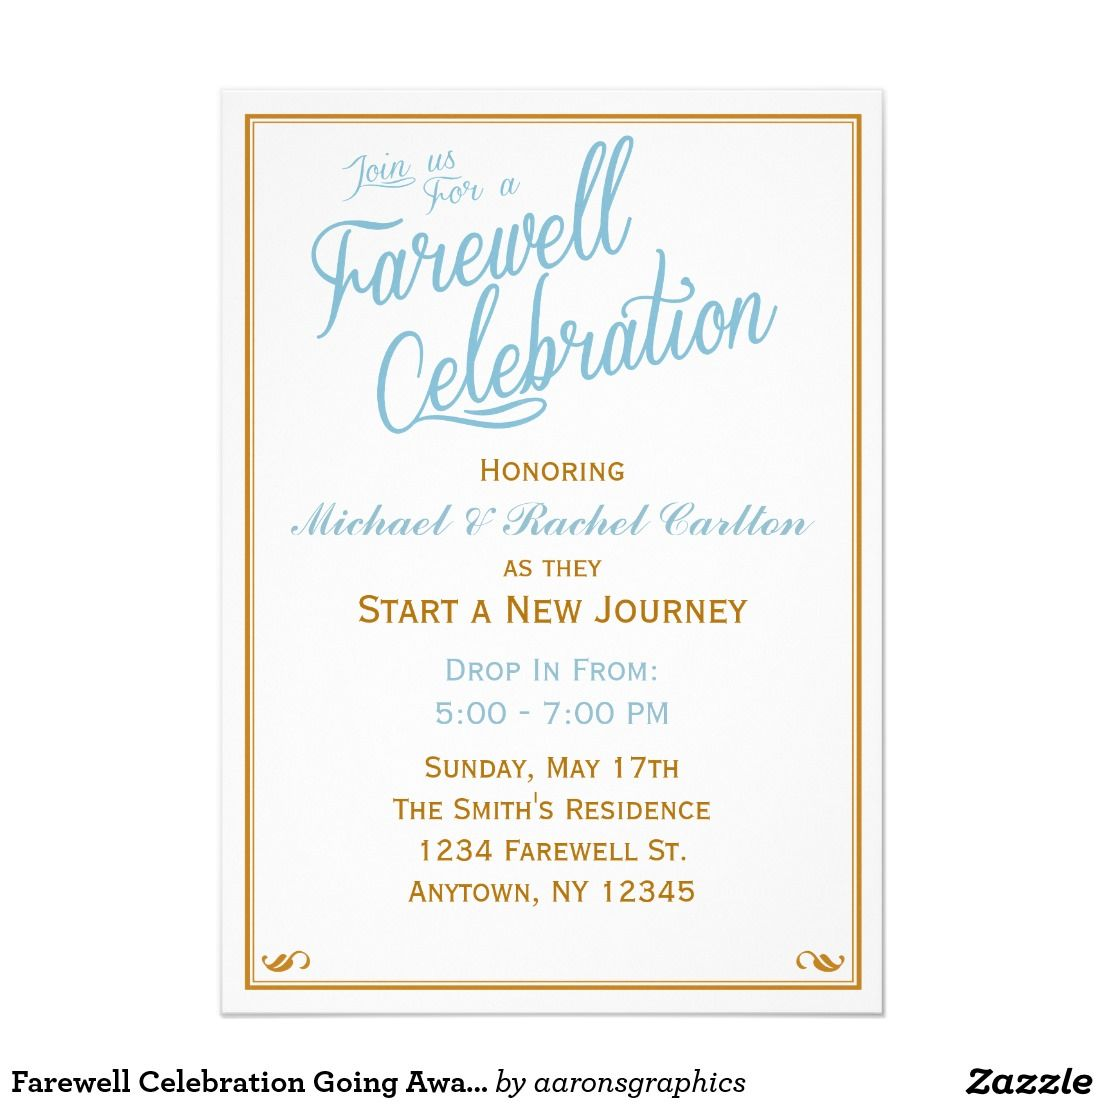 Celebrate clipart farewell. Celebration going away invitation